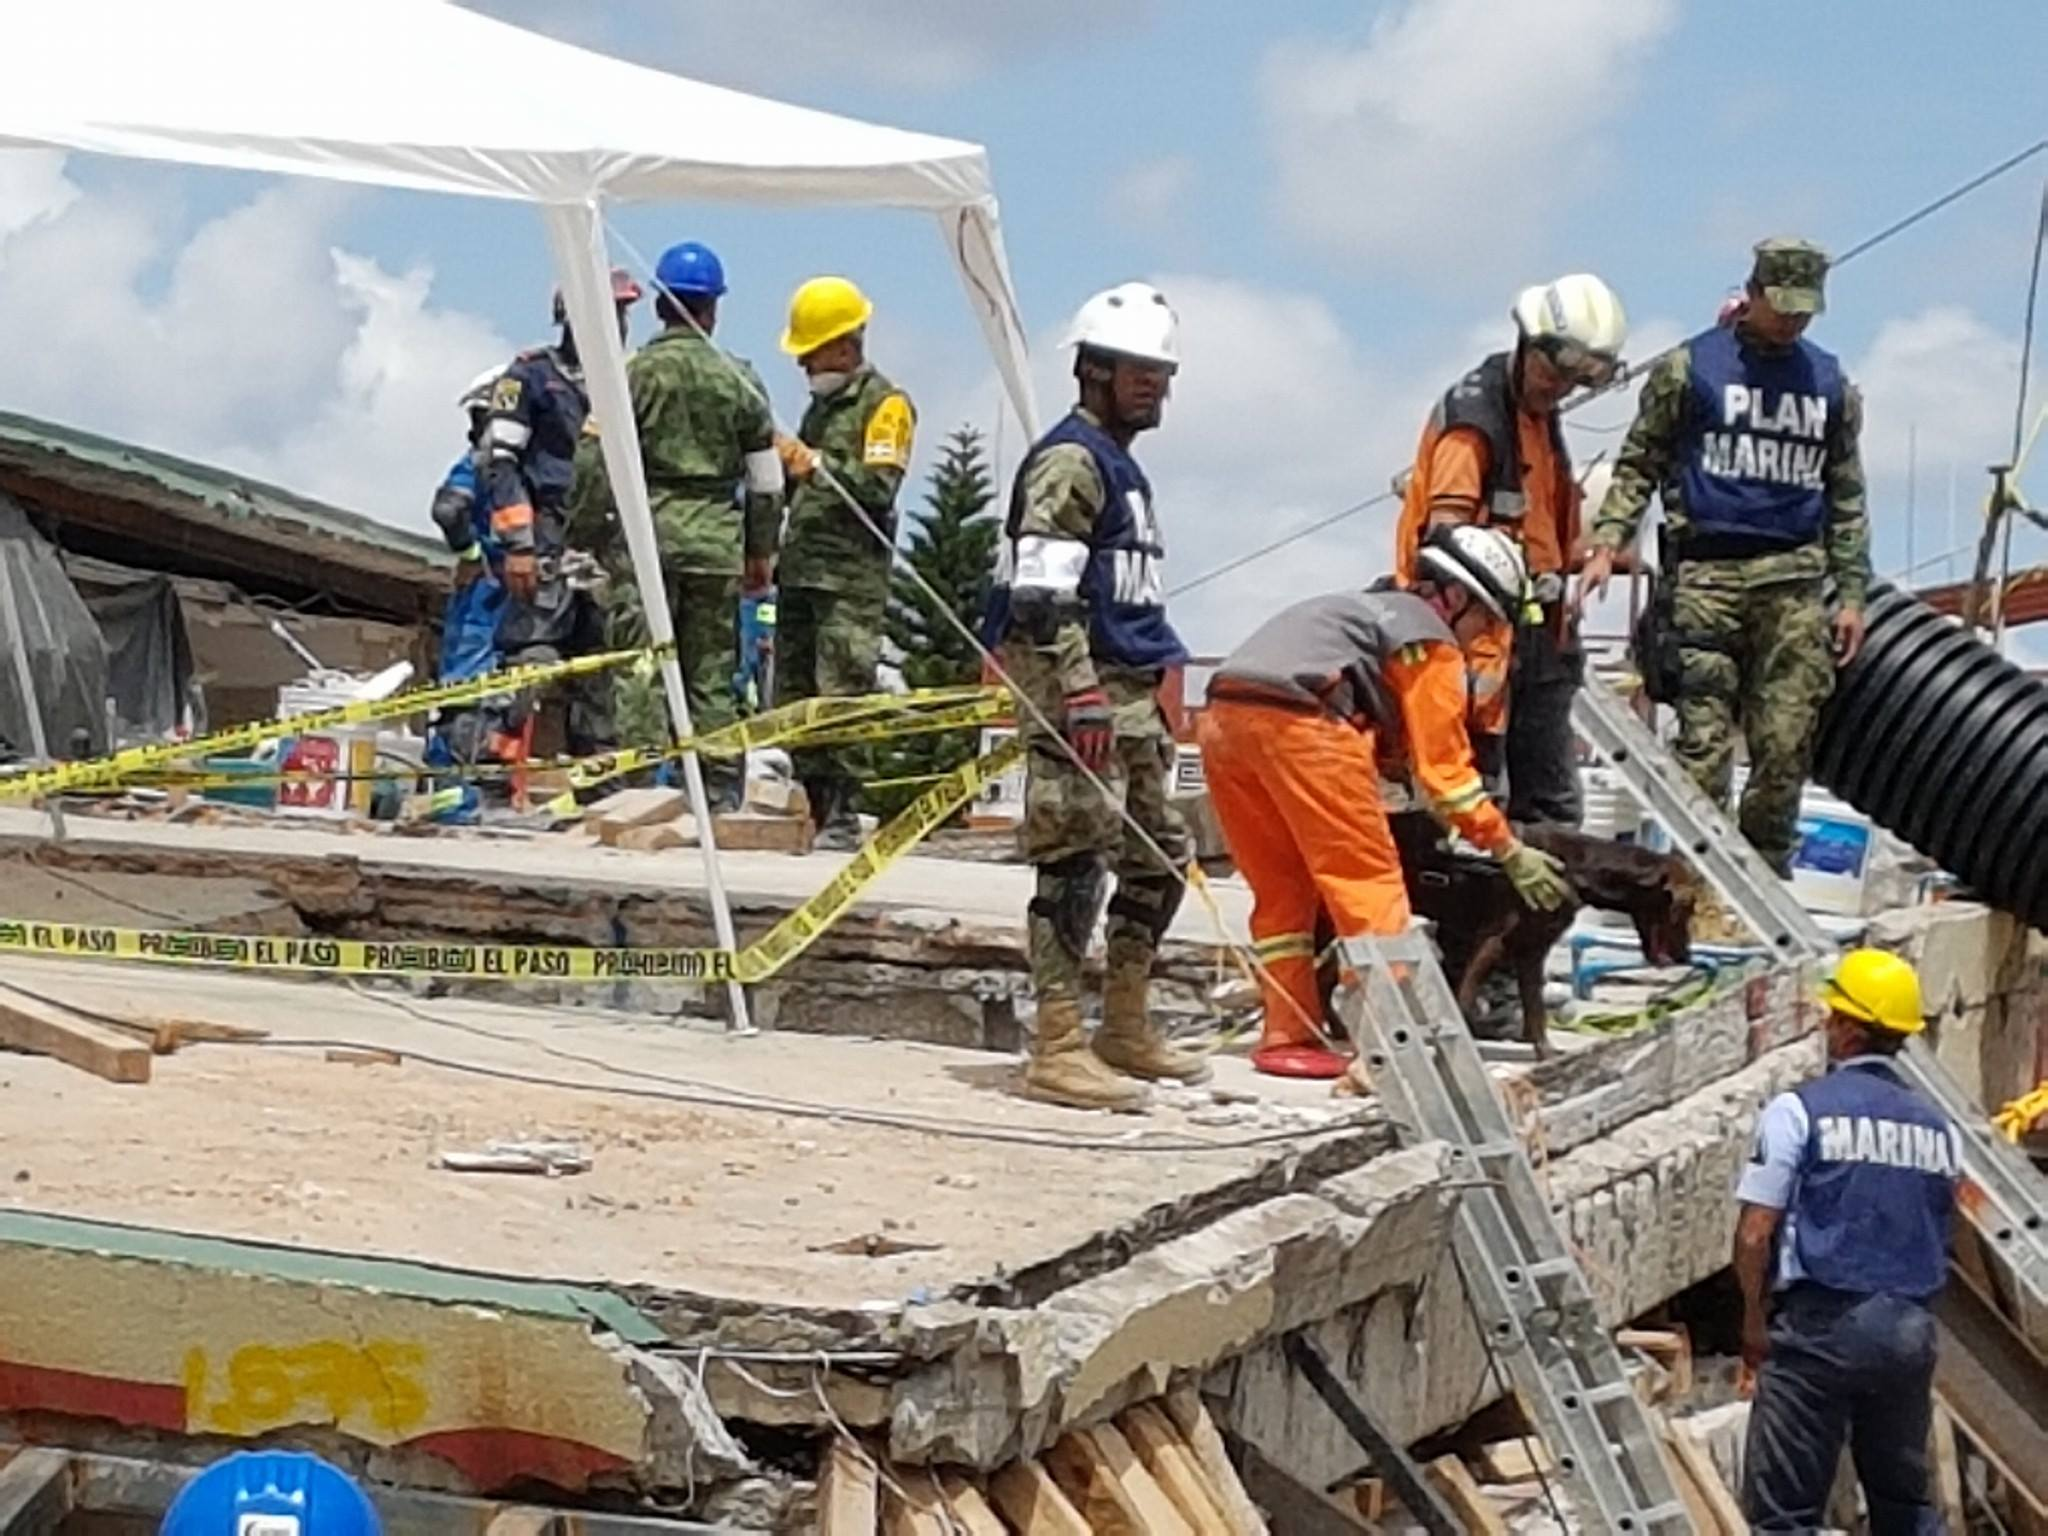 Former Grande Prairie resident helping with earthquake rescue efforts in Mexico